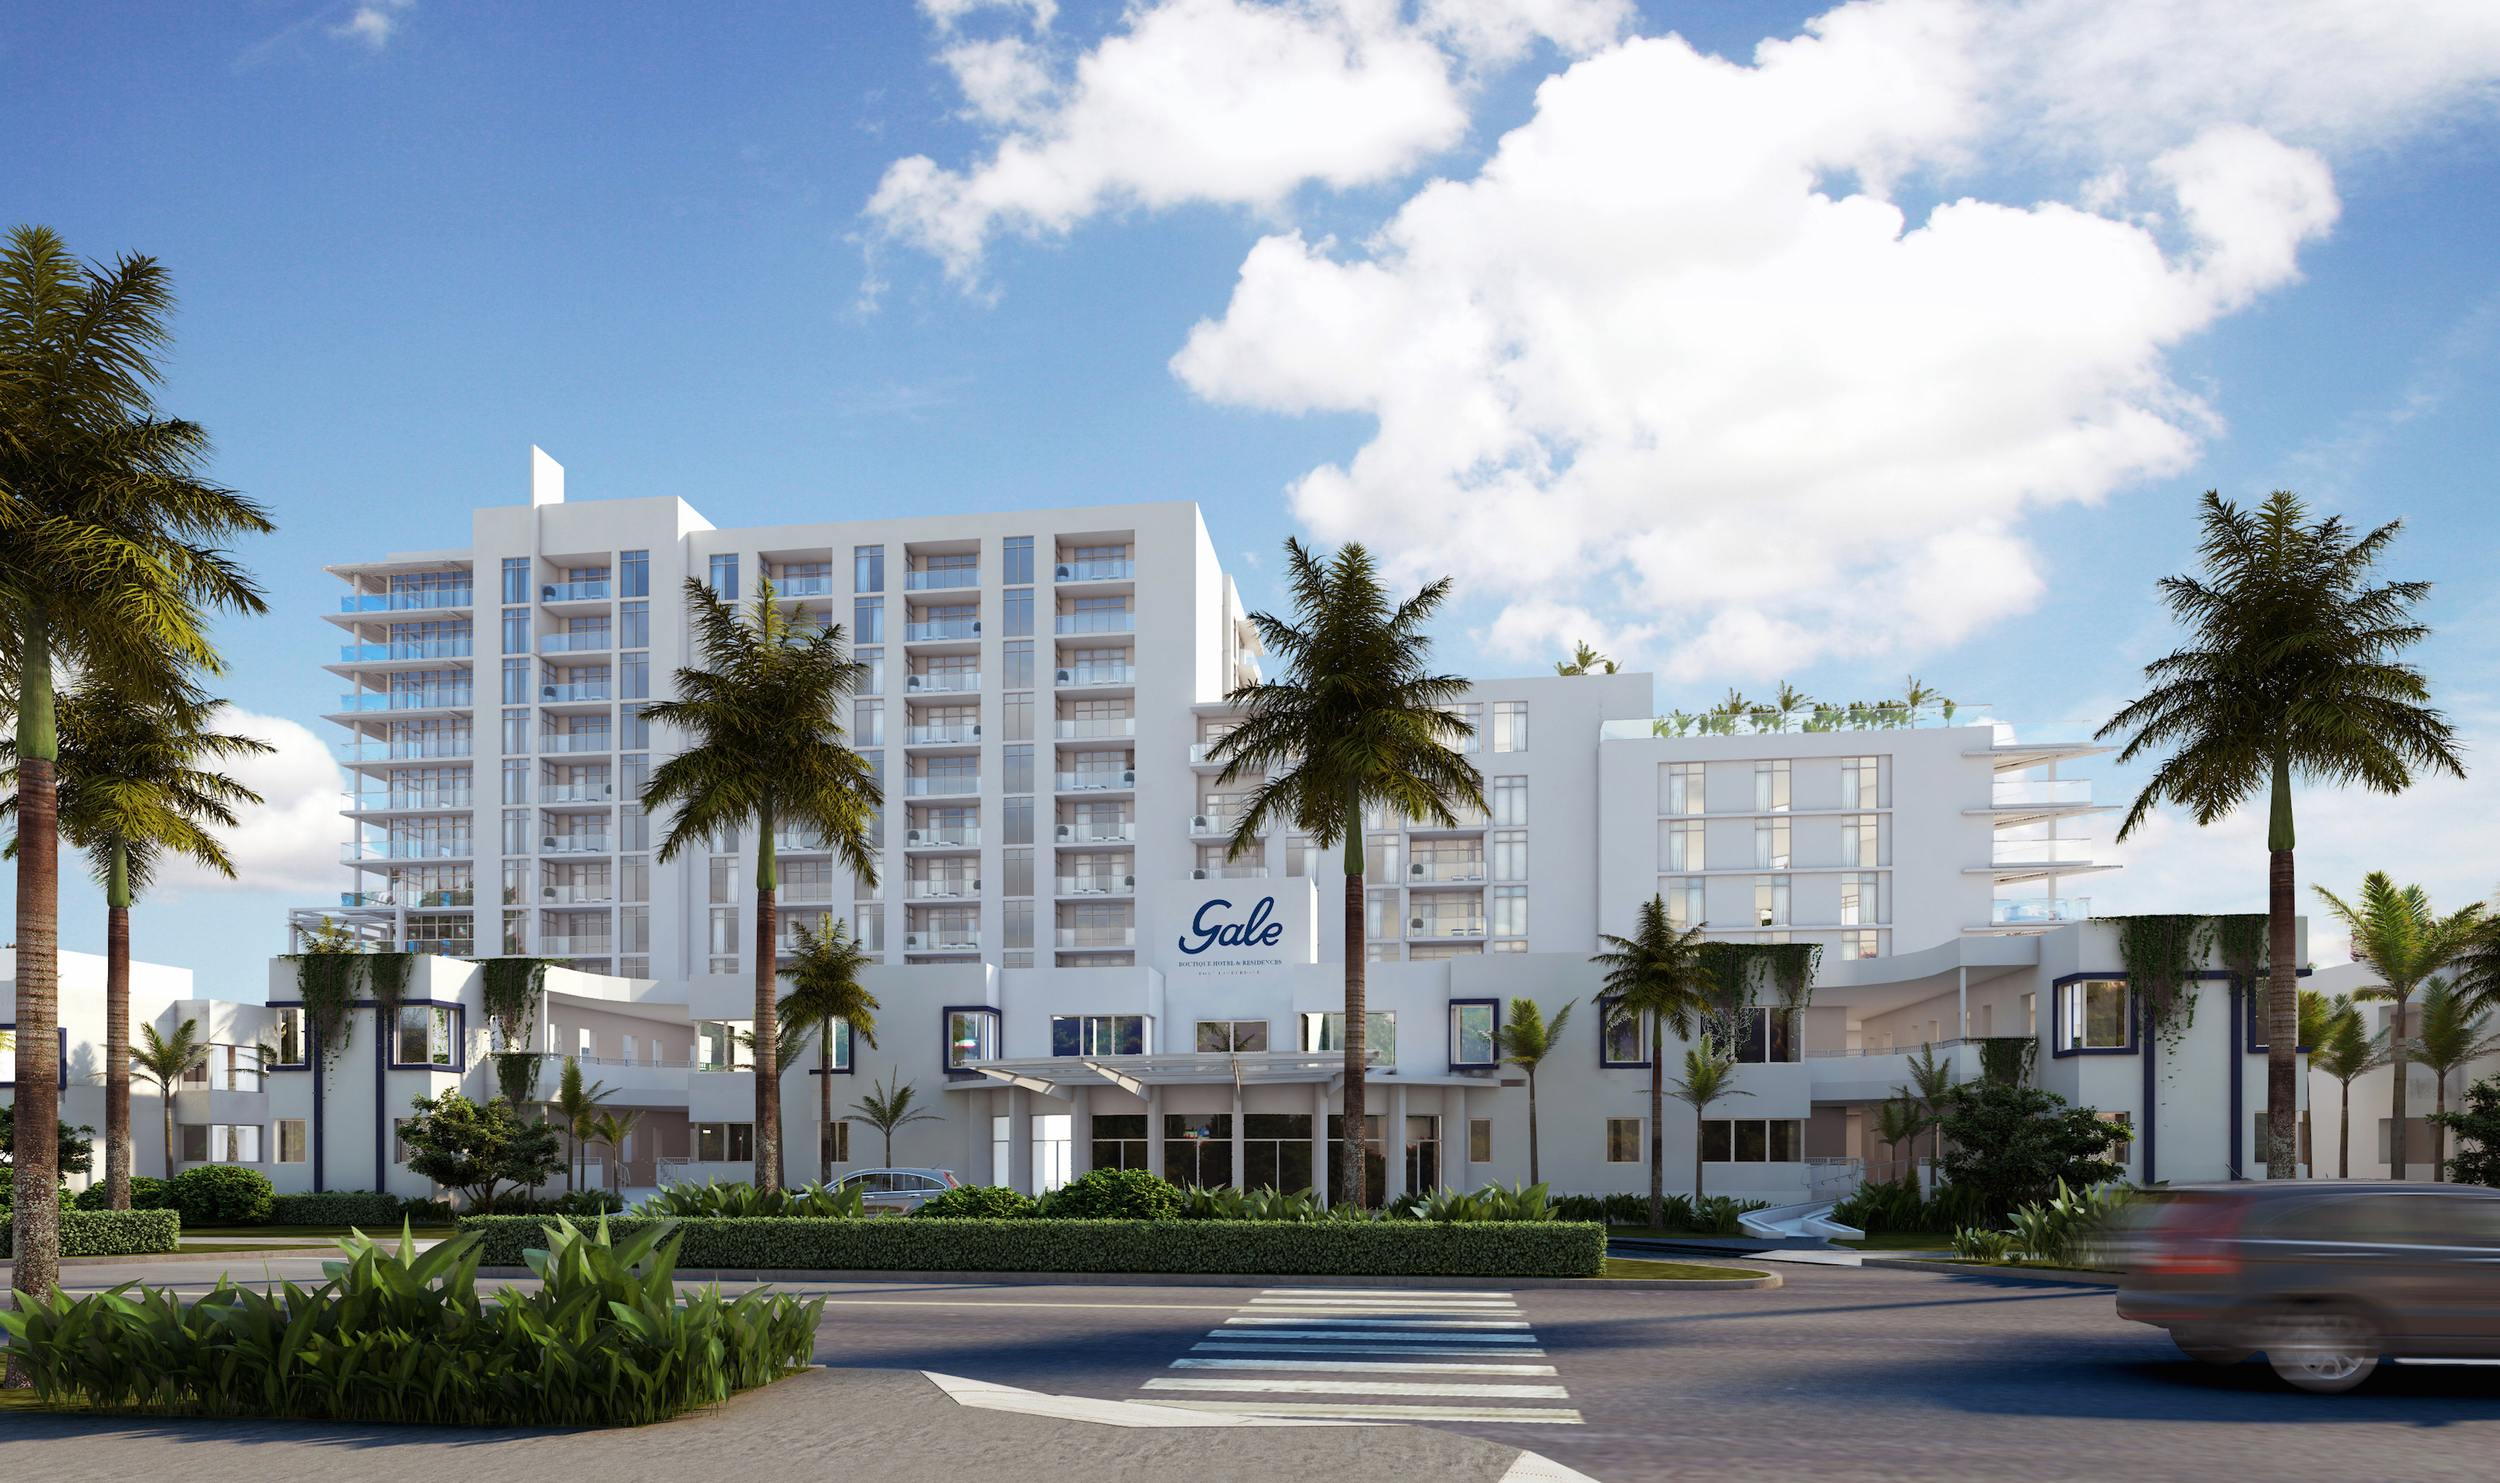 Gale Ft.Lauderdale Hotel Boutique Building Day Time